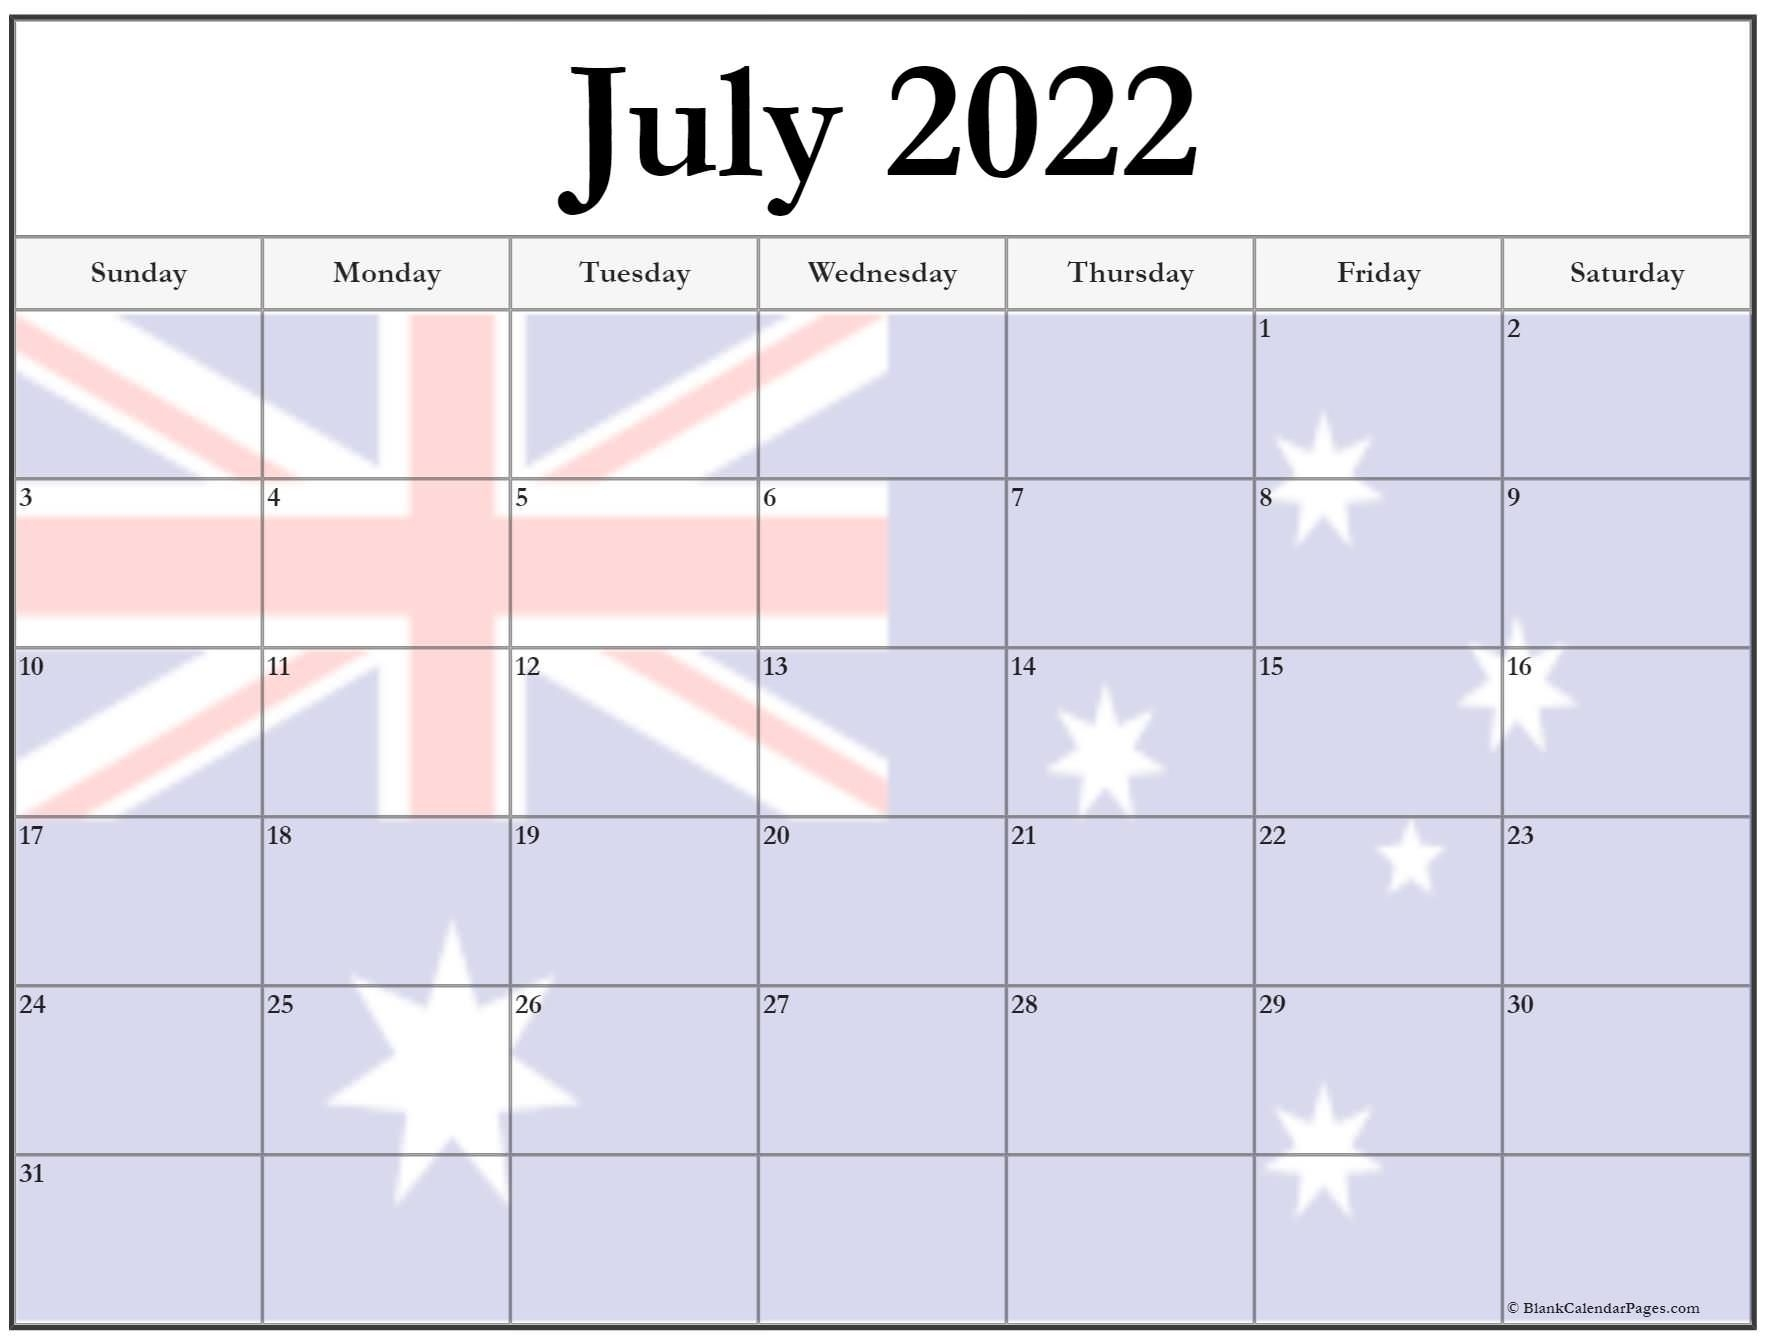 Collection Of July 2022 Photo Calendars With Image Filters.